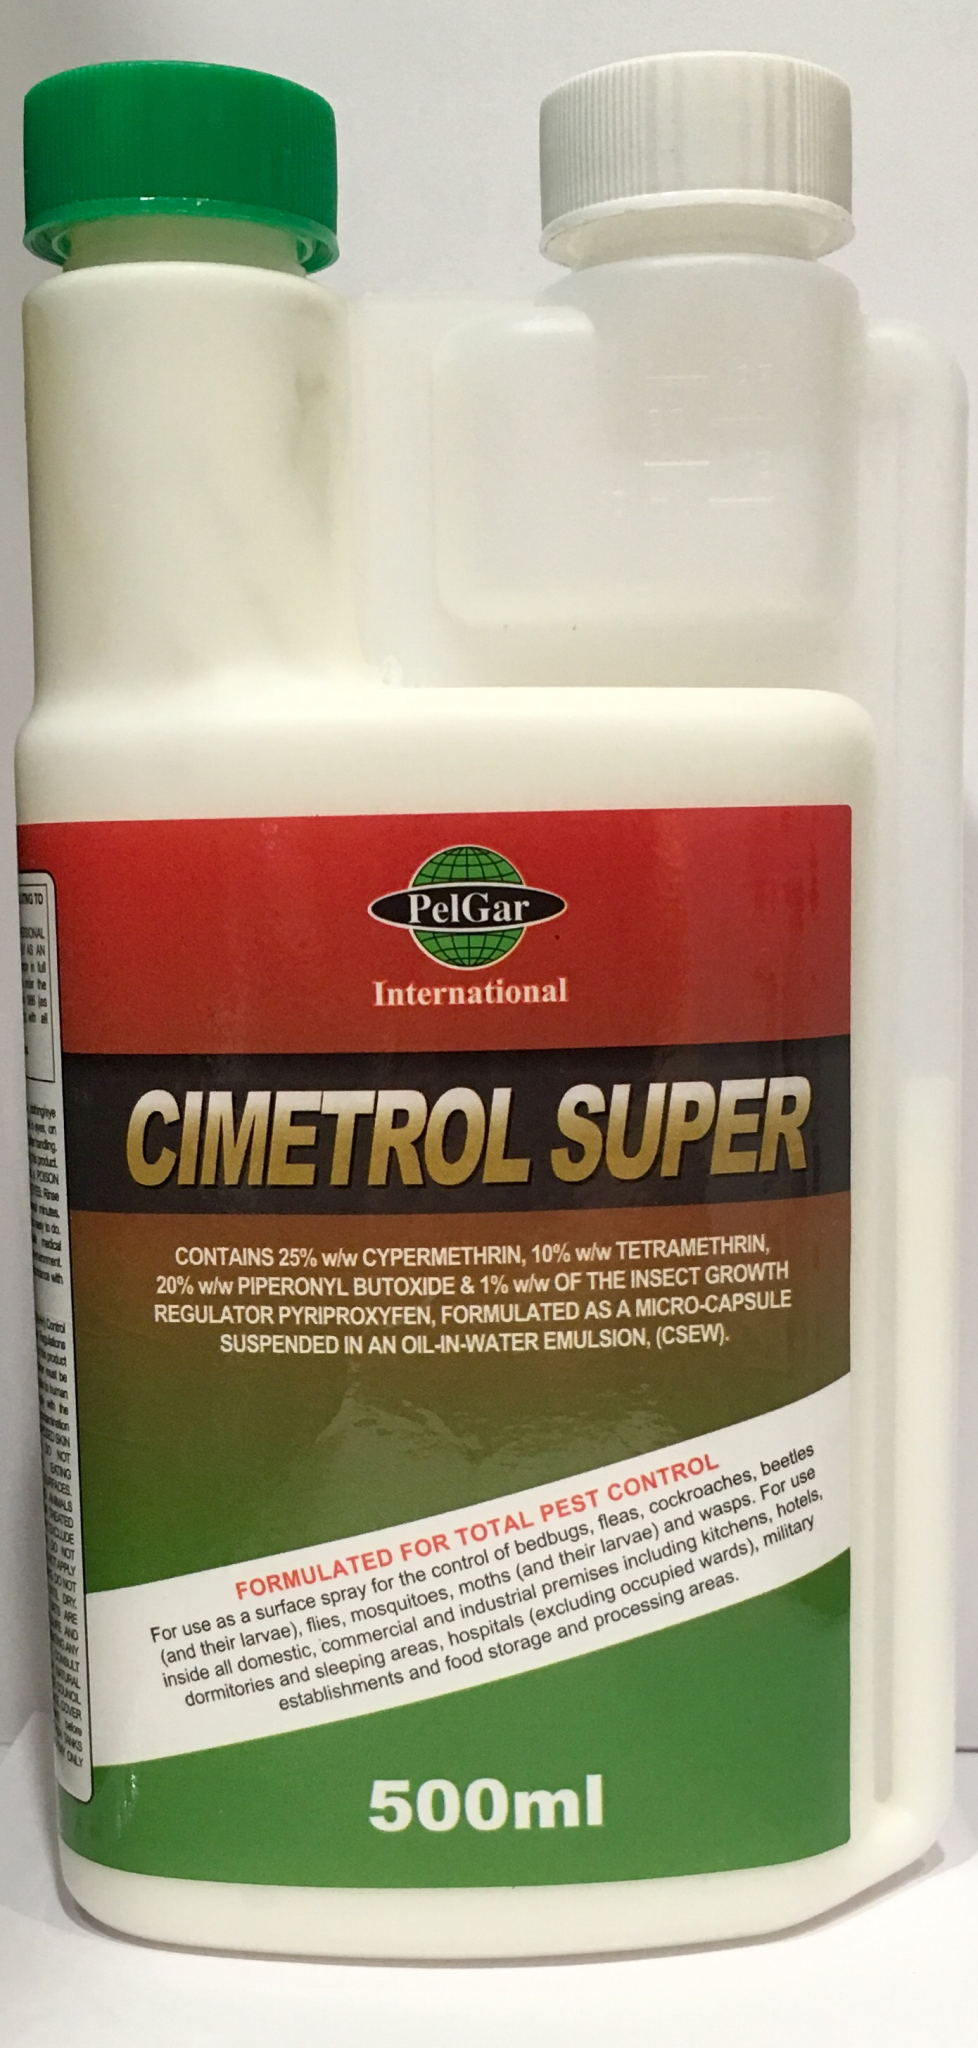 super cimetrol liquid insecticide concentrate very powerful neo cafard les meilleurs. Black Bedroom Furniture Sets. Home Design Ideas